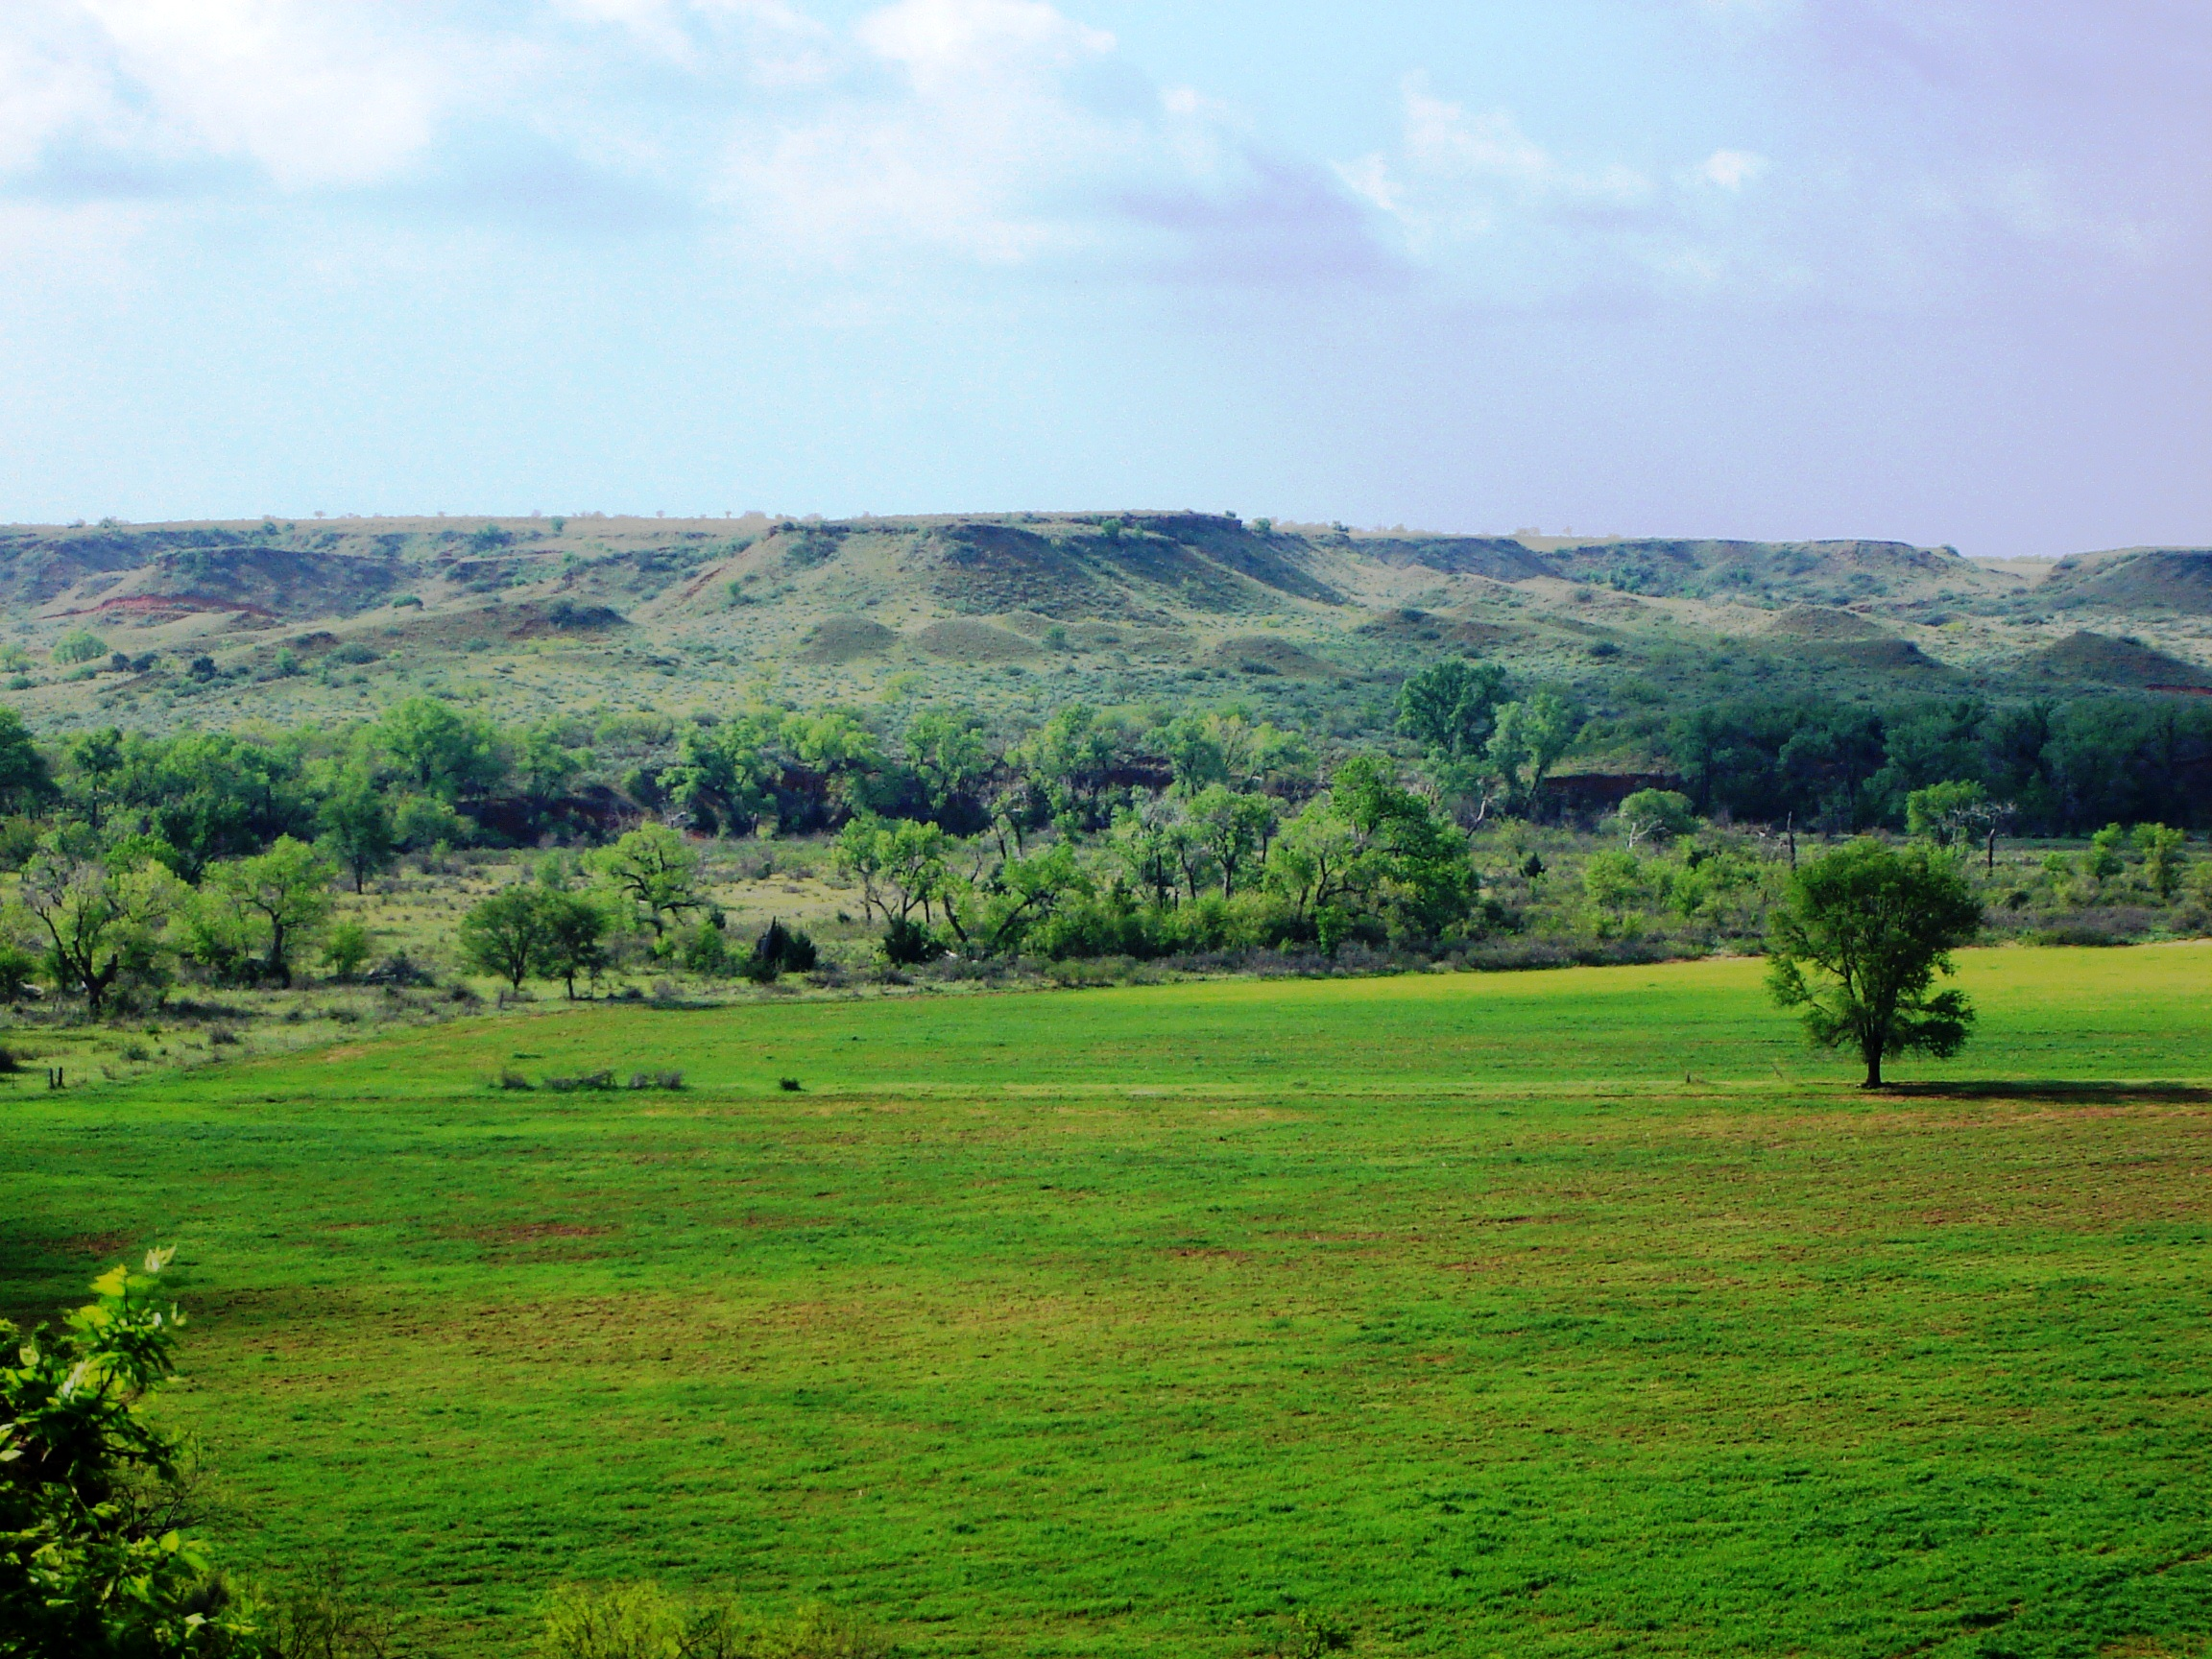 A new web-based land-use tool is available at the Texas Land Trends website